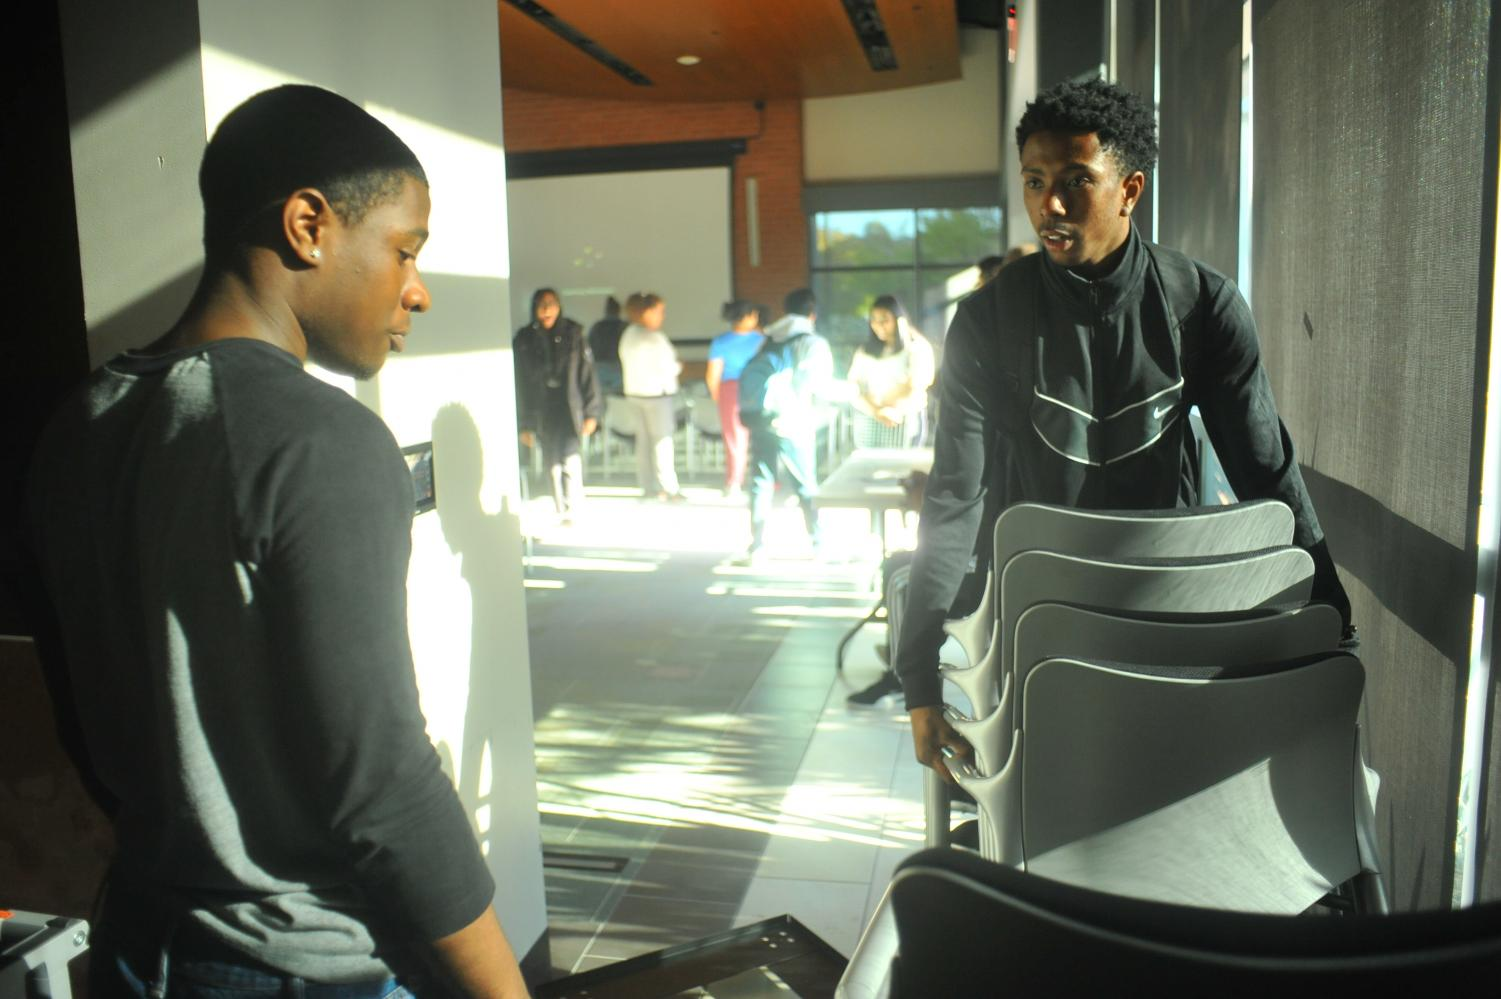 Students put away tables after the student town hall event finished early because of the lack of administrative participation in the Fireside Hall on Thursday.